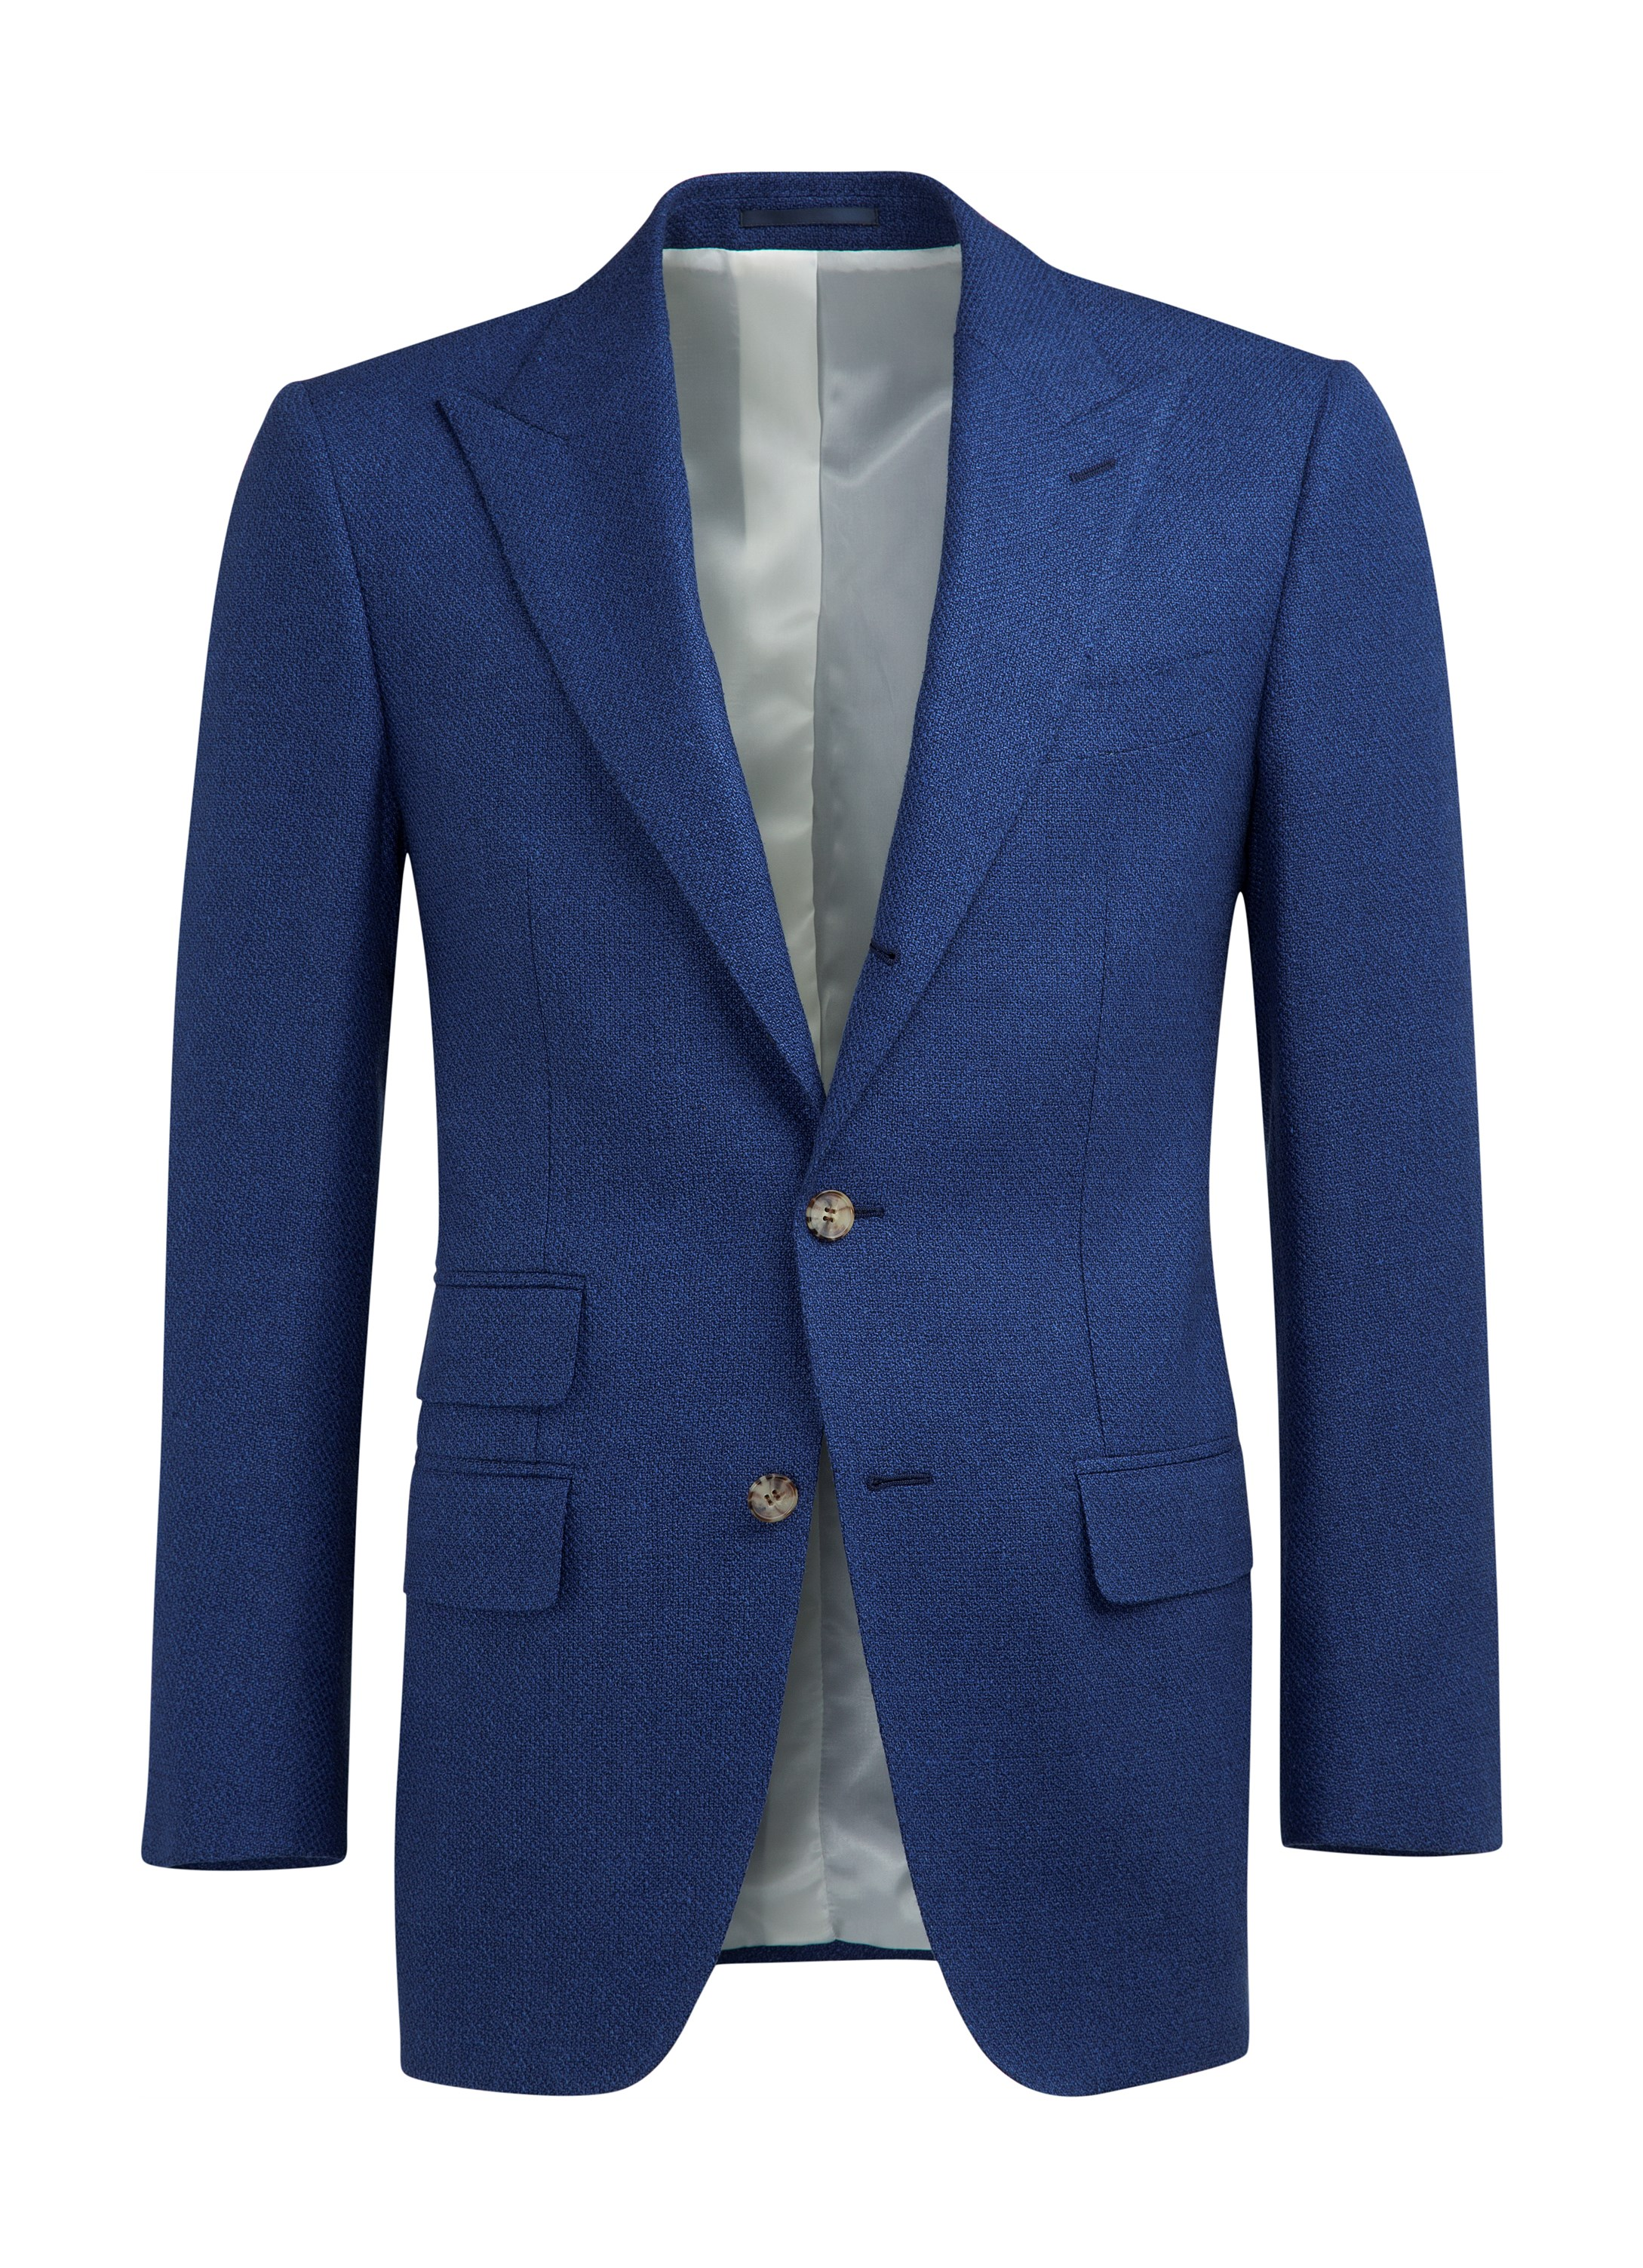 http://statics.suitsupply.com/images/products/Jackets/zoom/Jackets_Blue_Plain_Washington_C827_Suitsupply_Online_Store_5.jpg